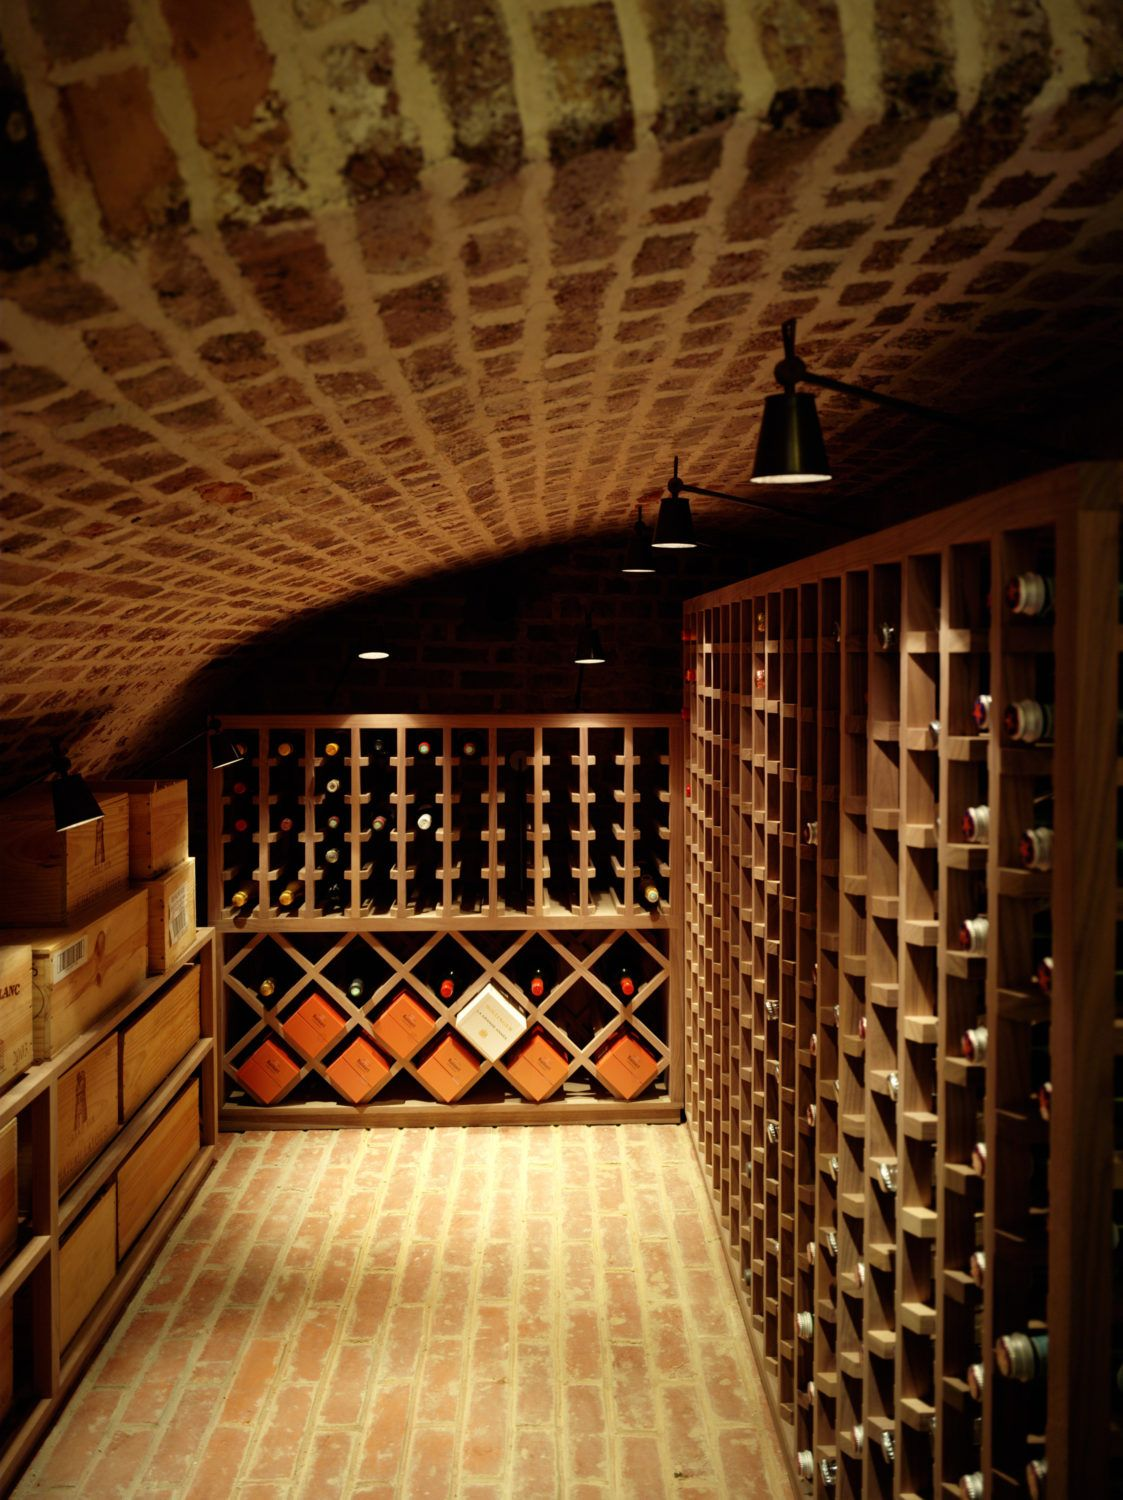 Projects Thorp Design Wine cellar design, Cellar